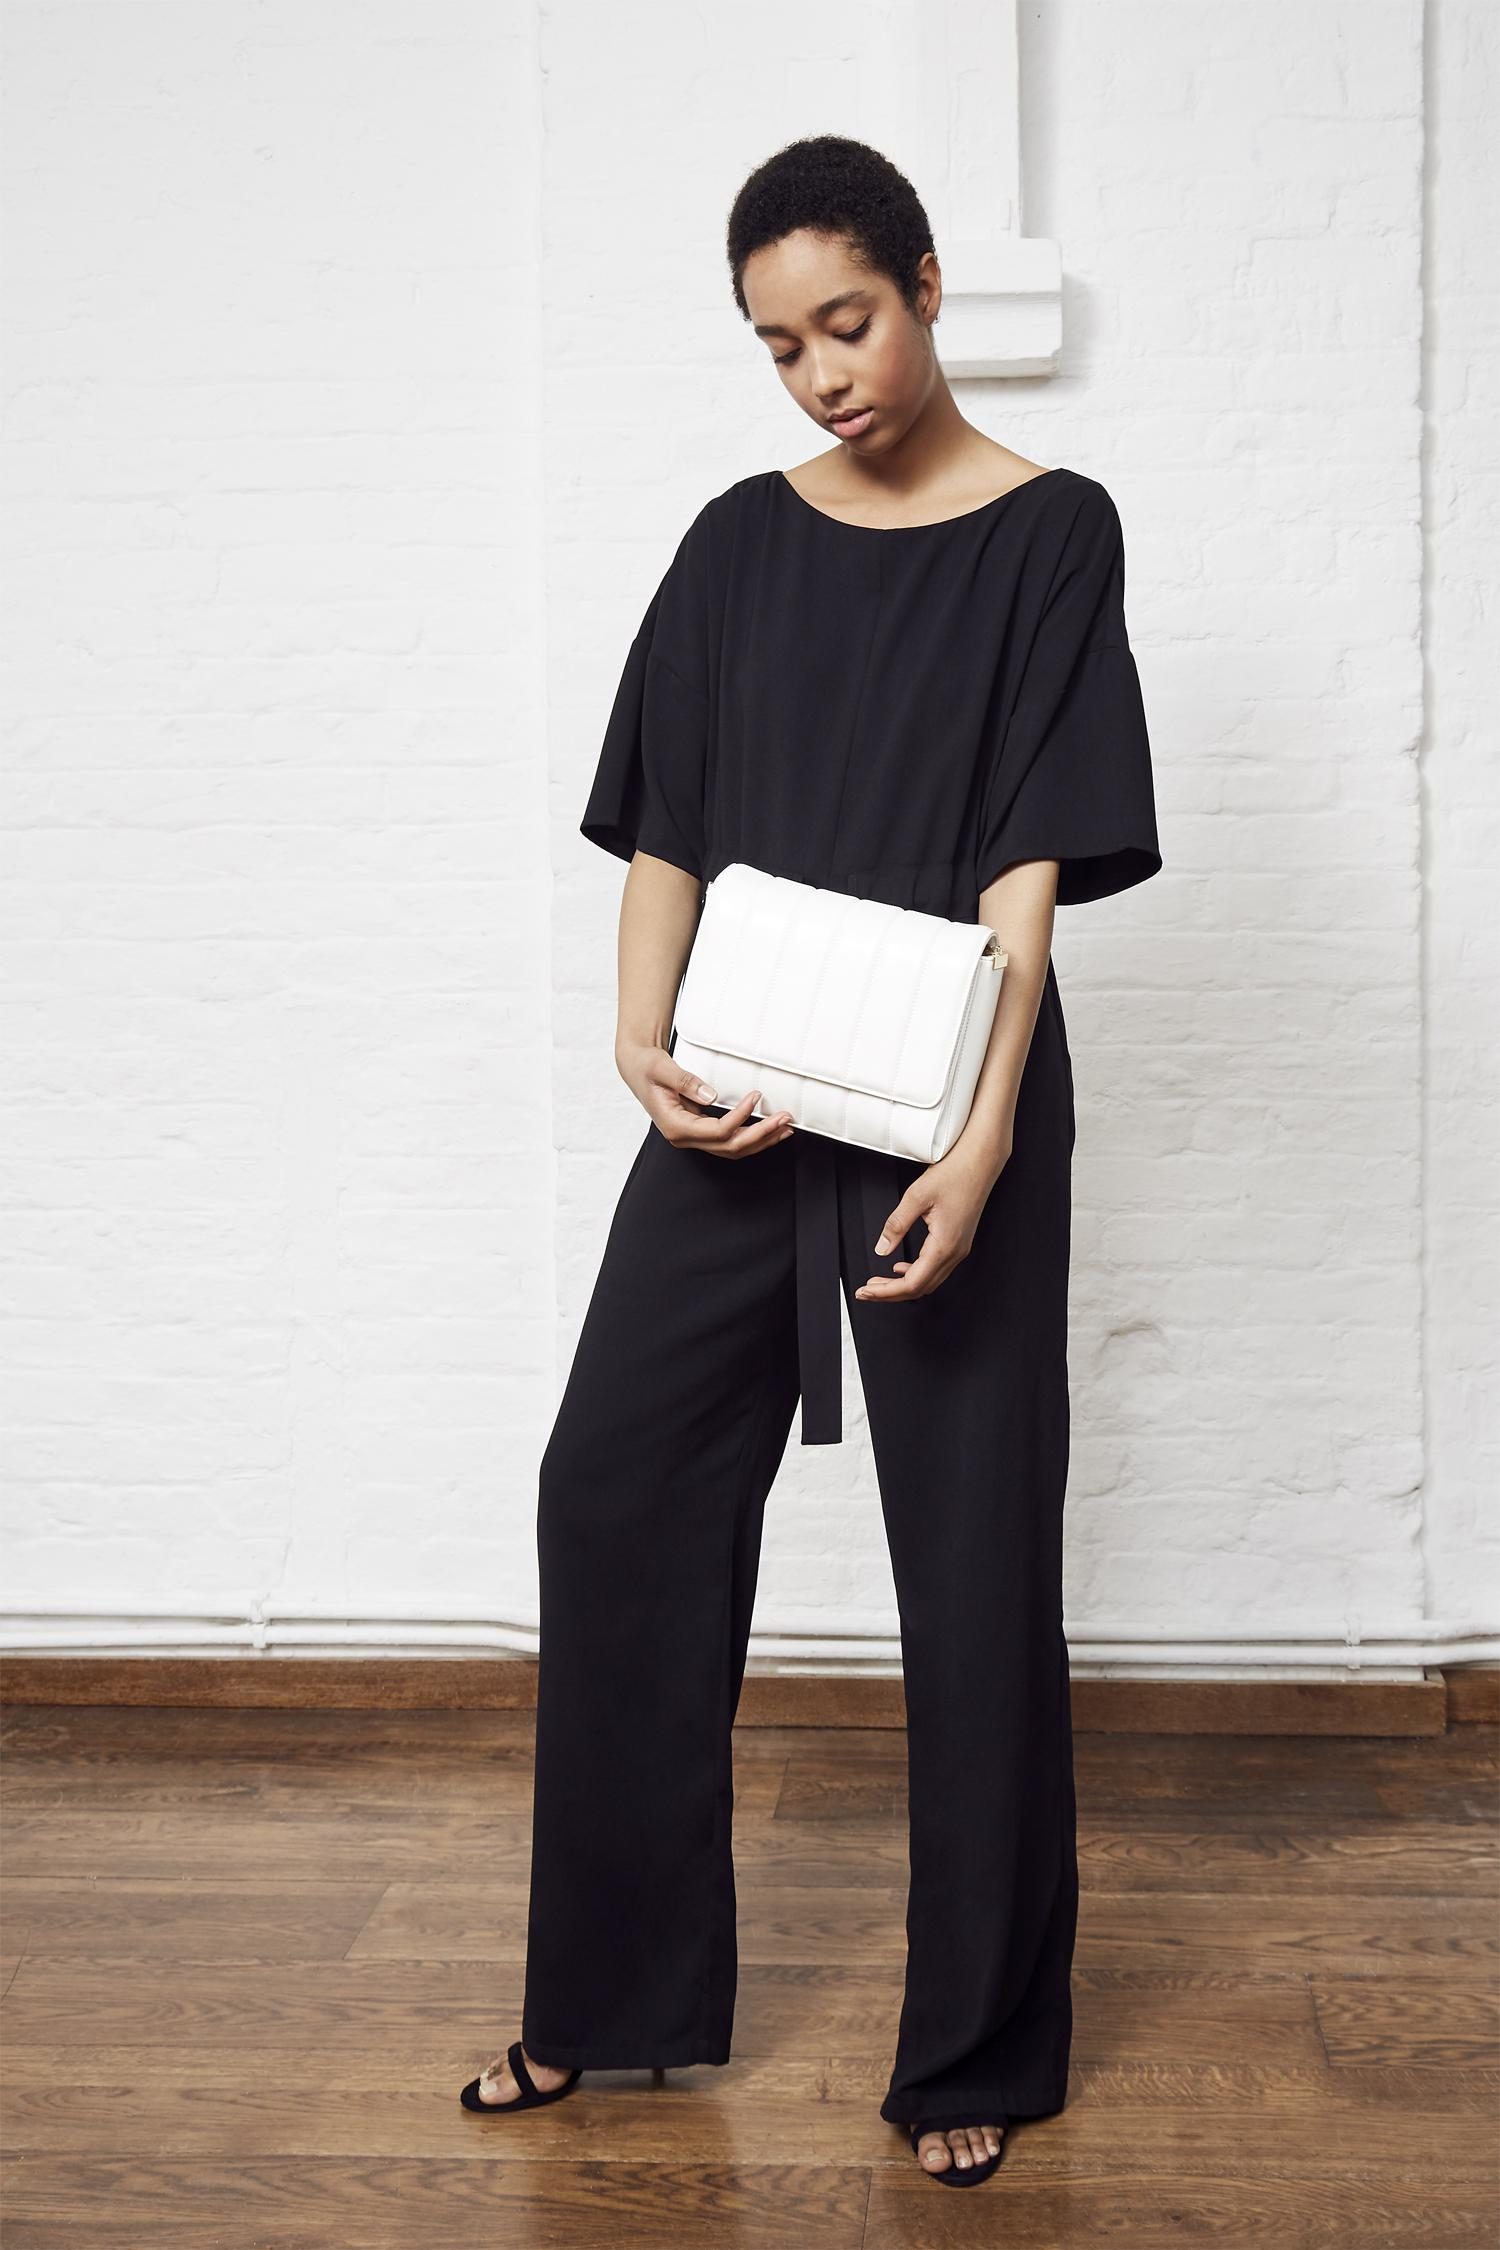 690397d9b125 Lyst - French Connection Patras Crepe Jumpsuit in Black